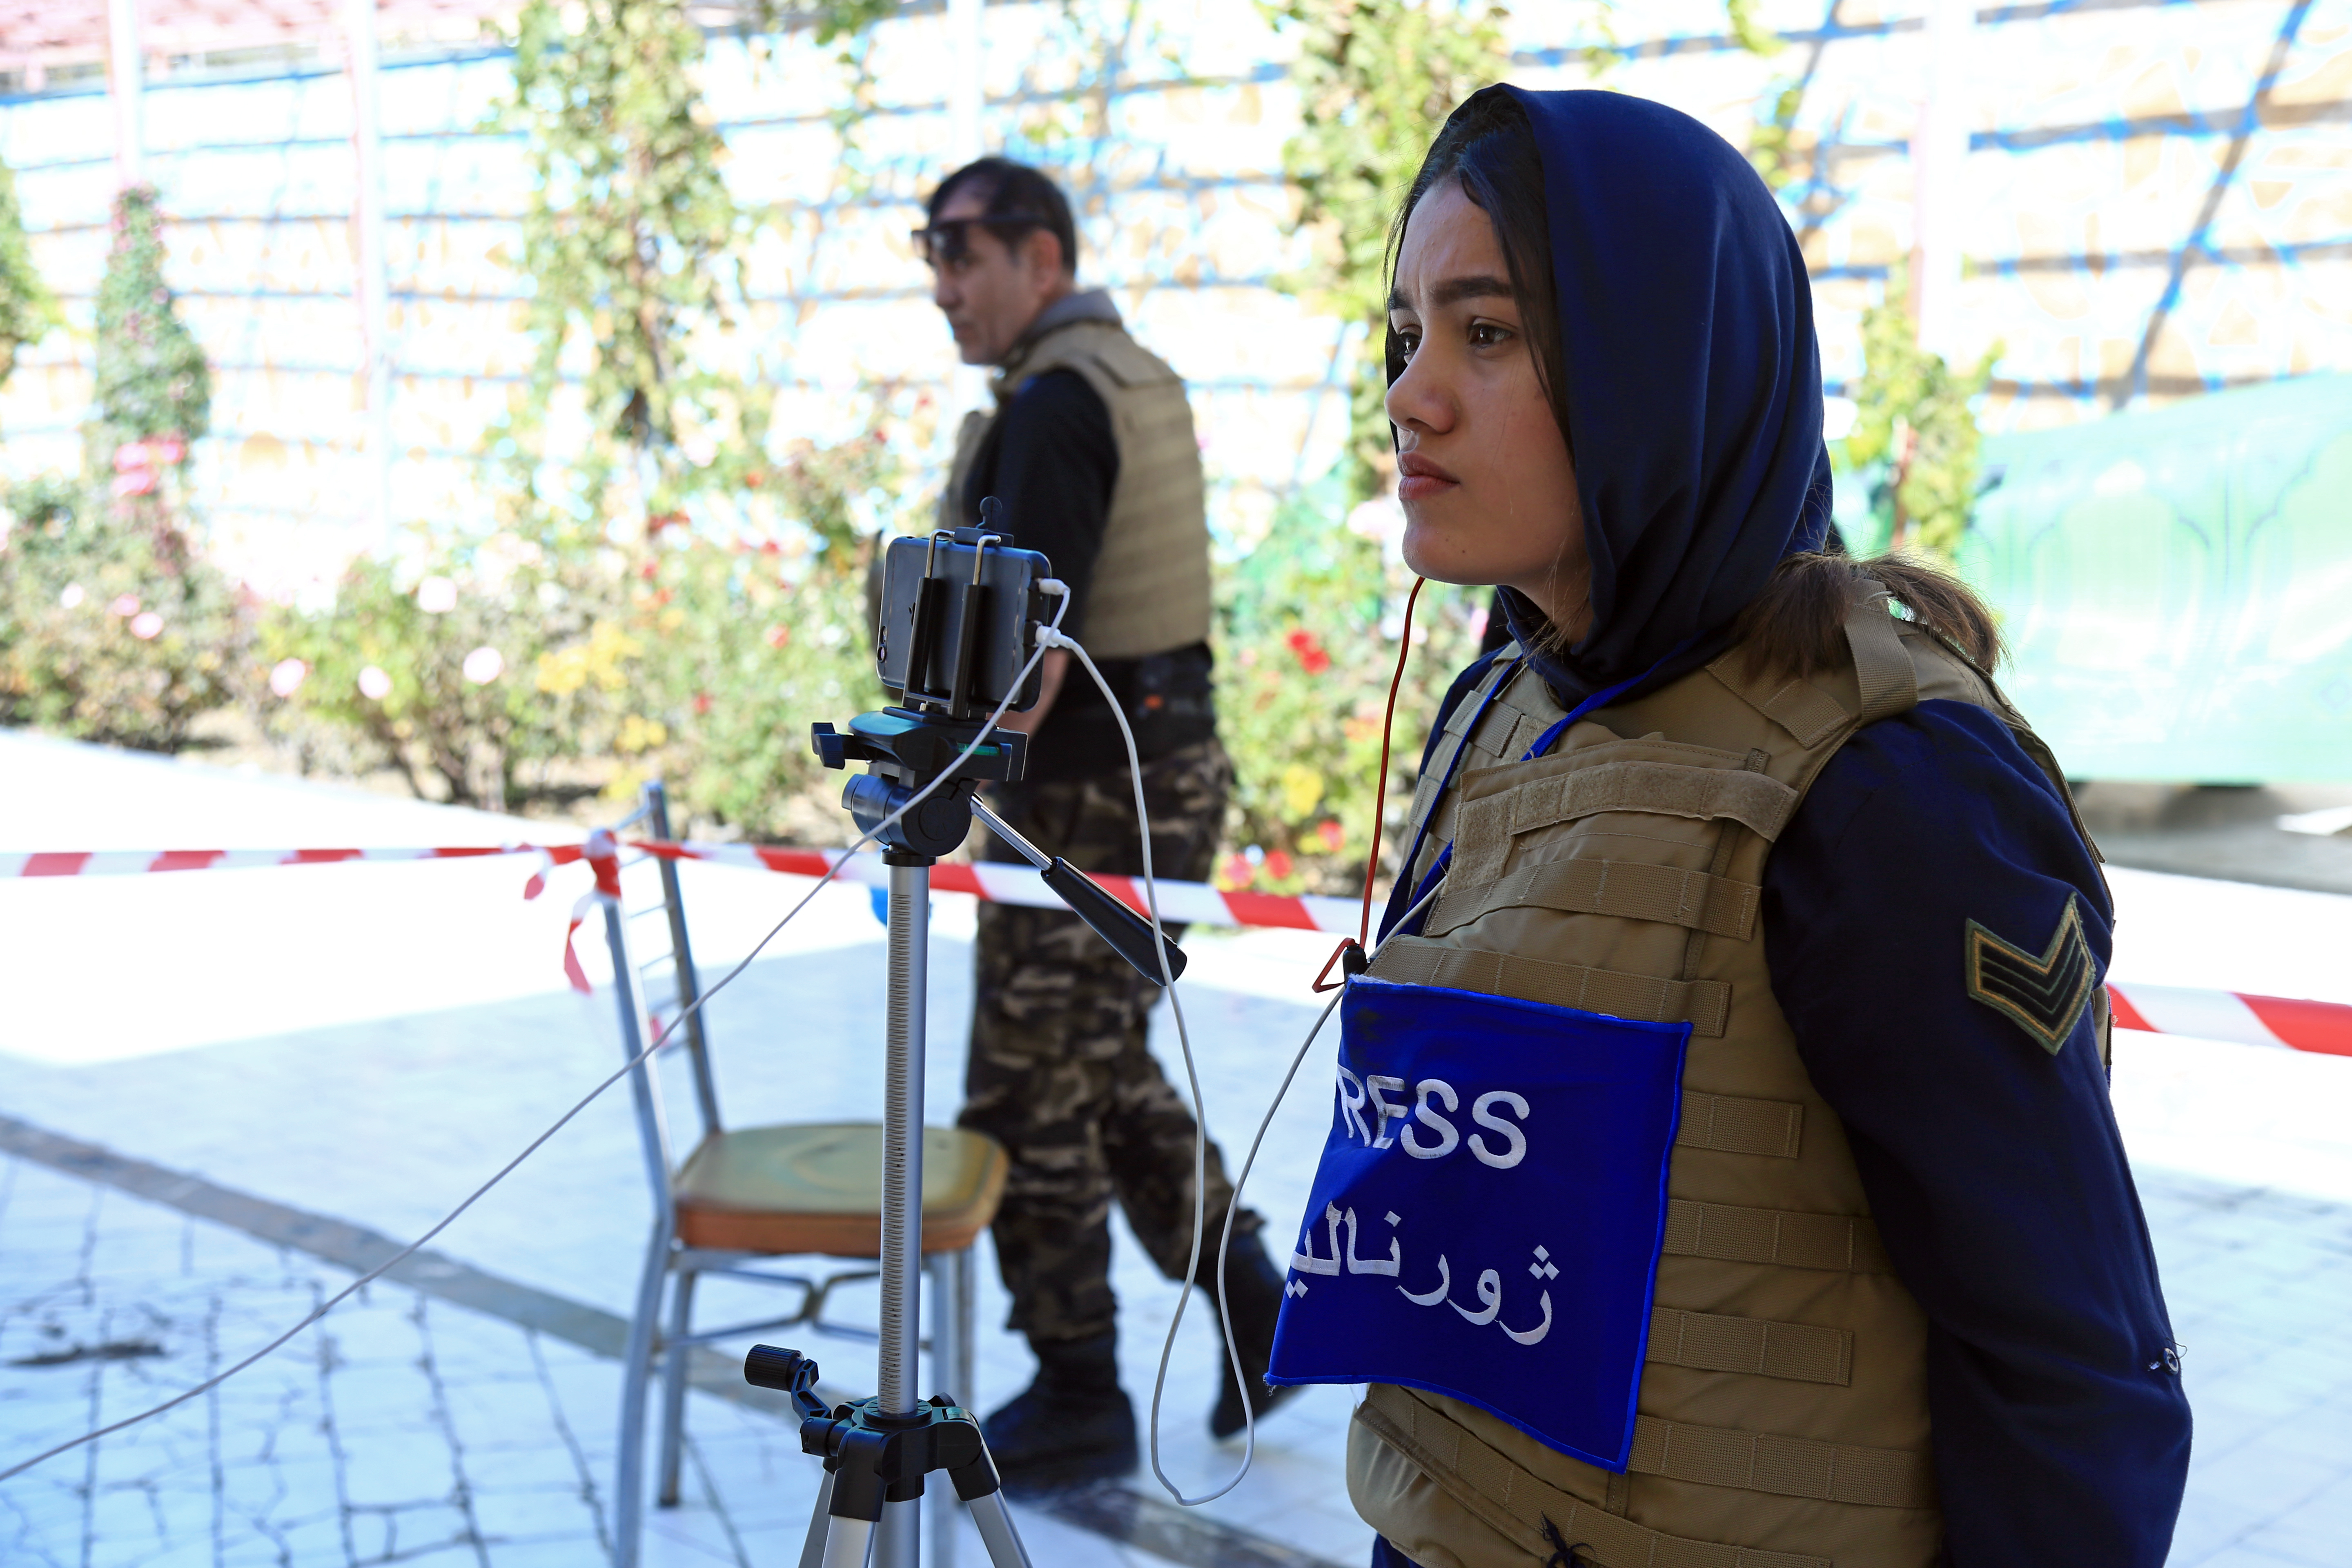 Breaking the silence: Women journalists fight harassment in the workplace